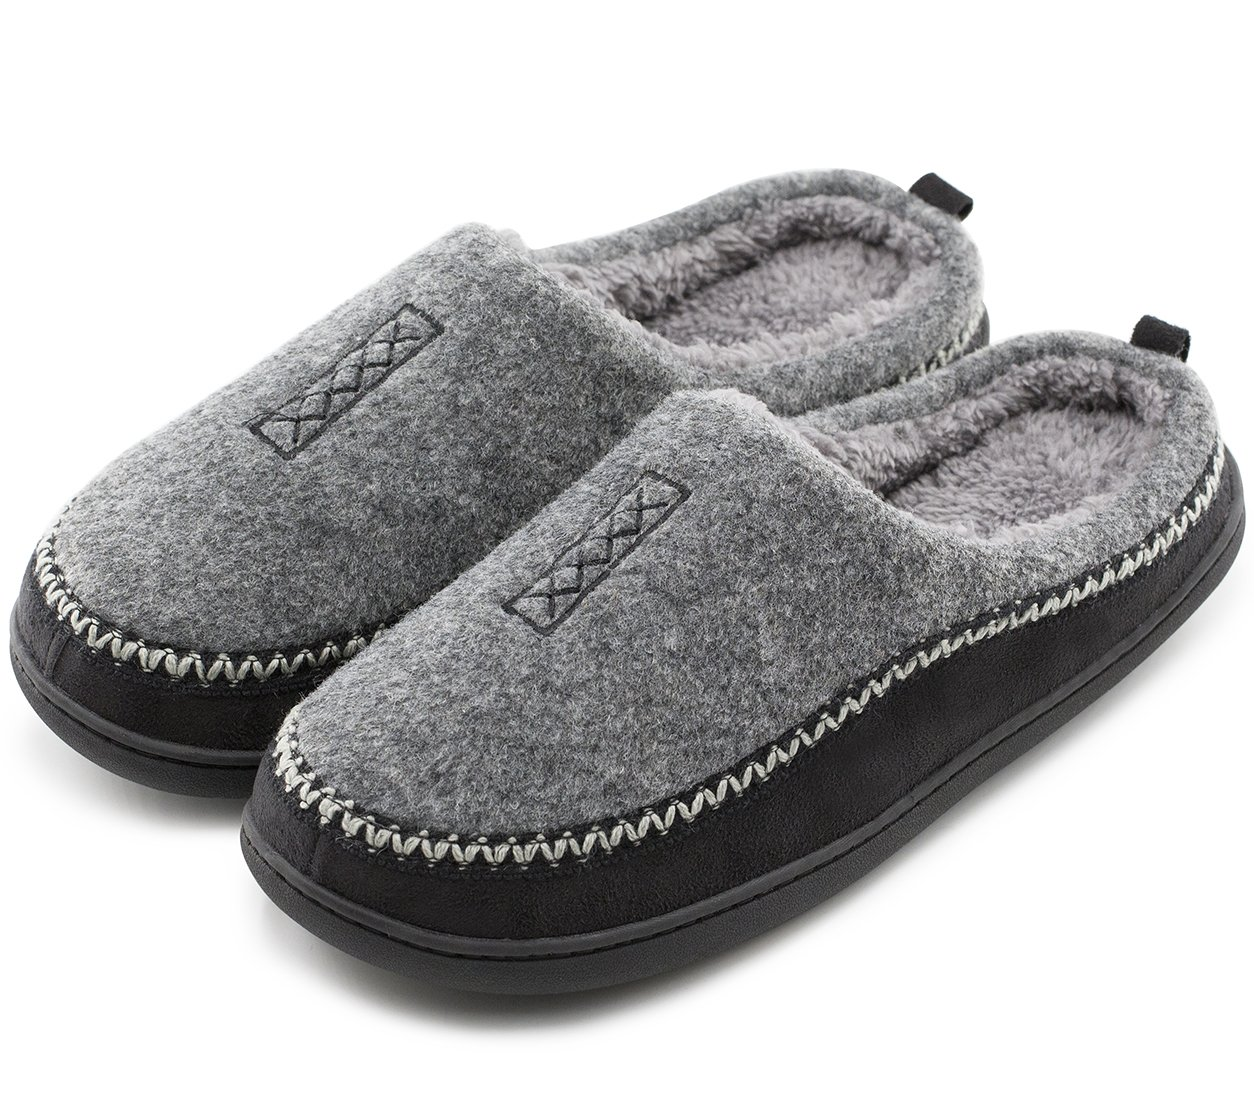 HomeTop Men's Indoor/Outdoor Wool Cross Decor Slip On Memory Foam Clog House Slippers (US Men's 11-12, Gray)